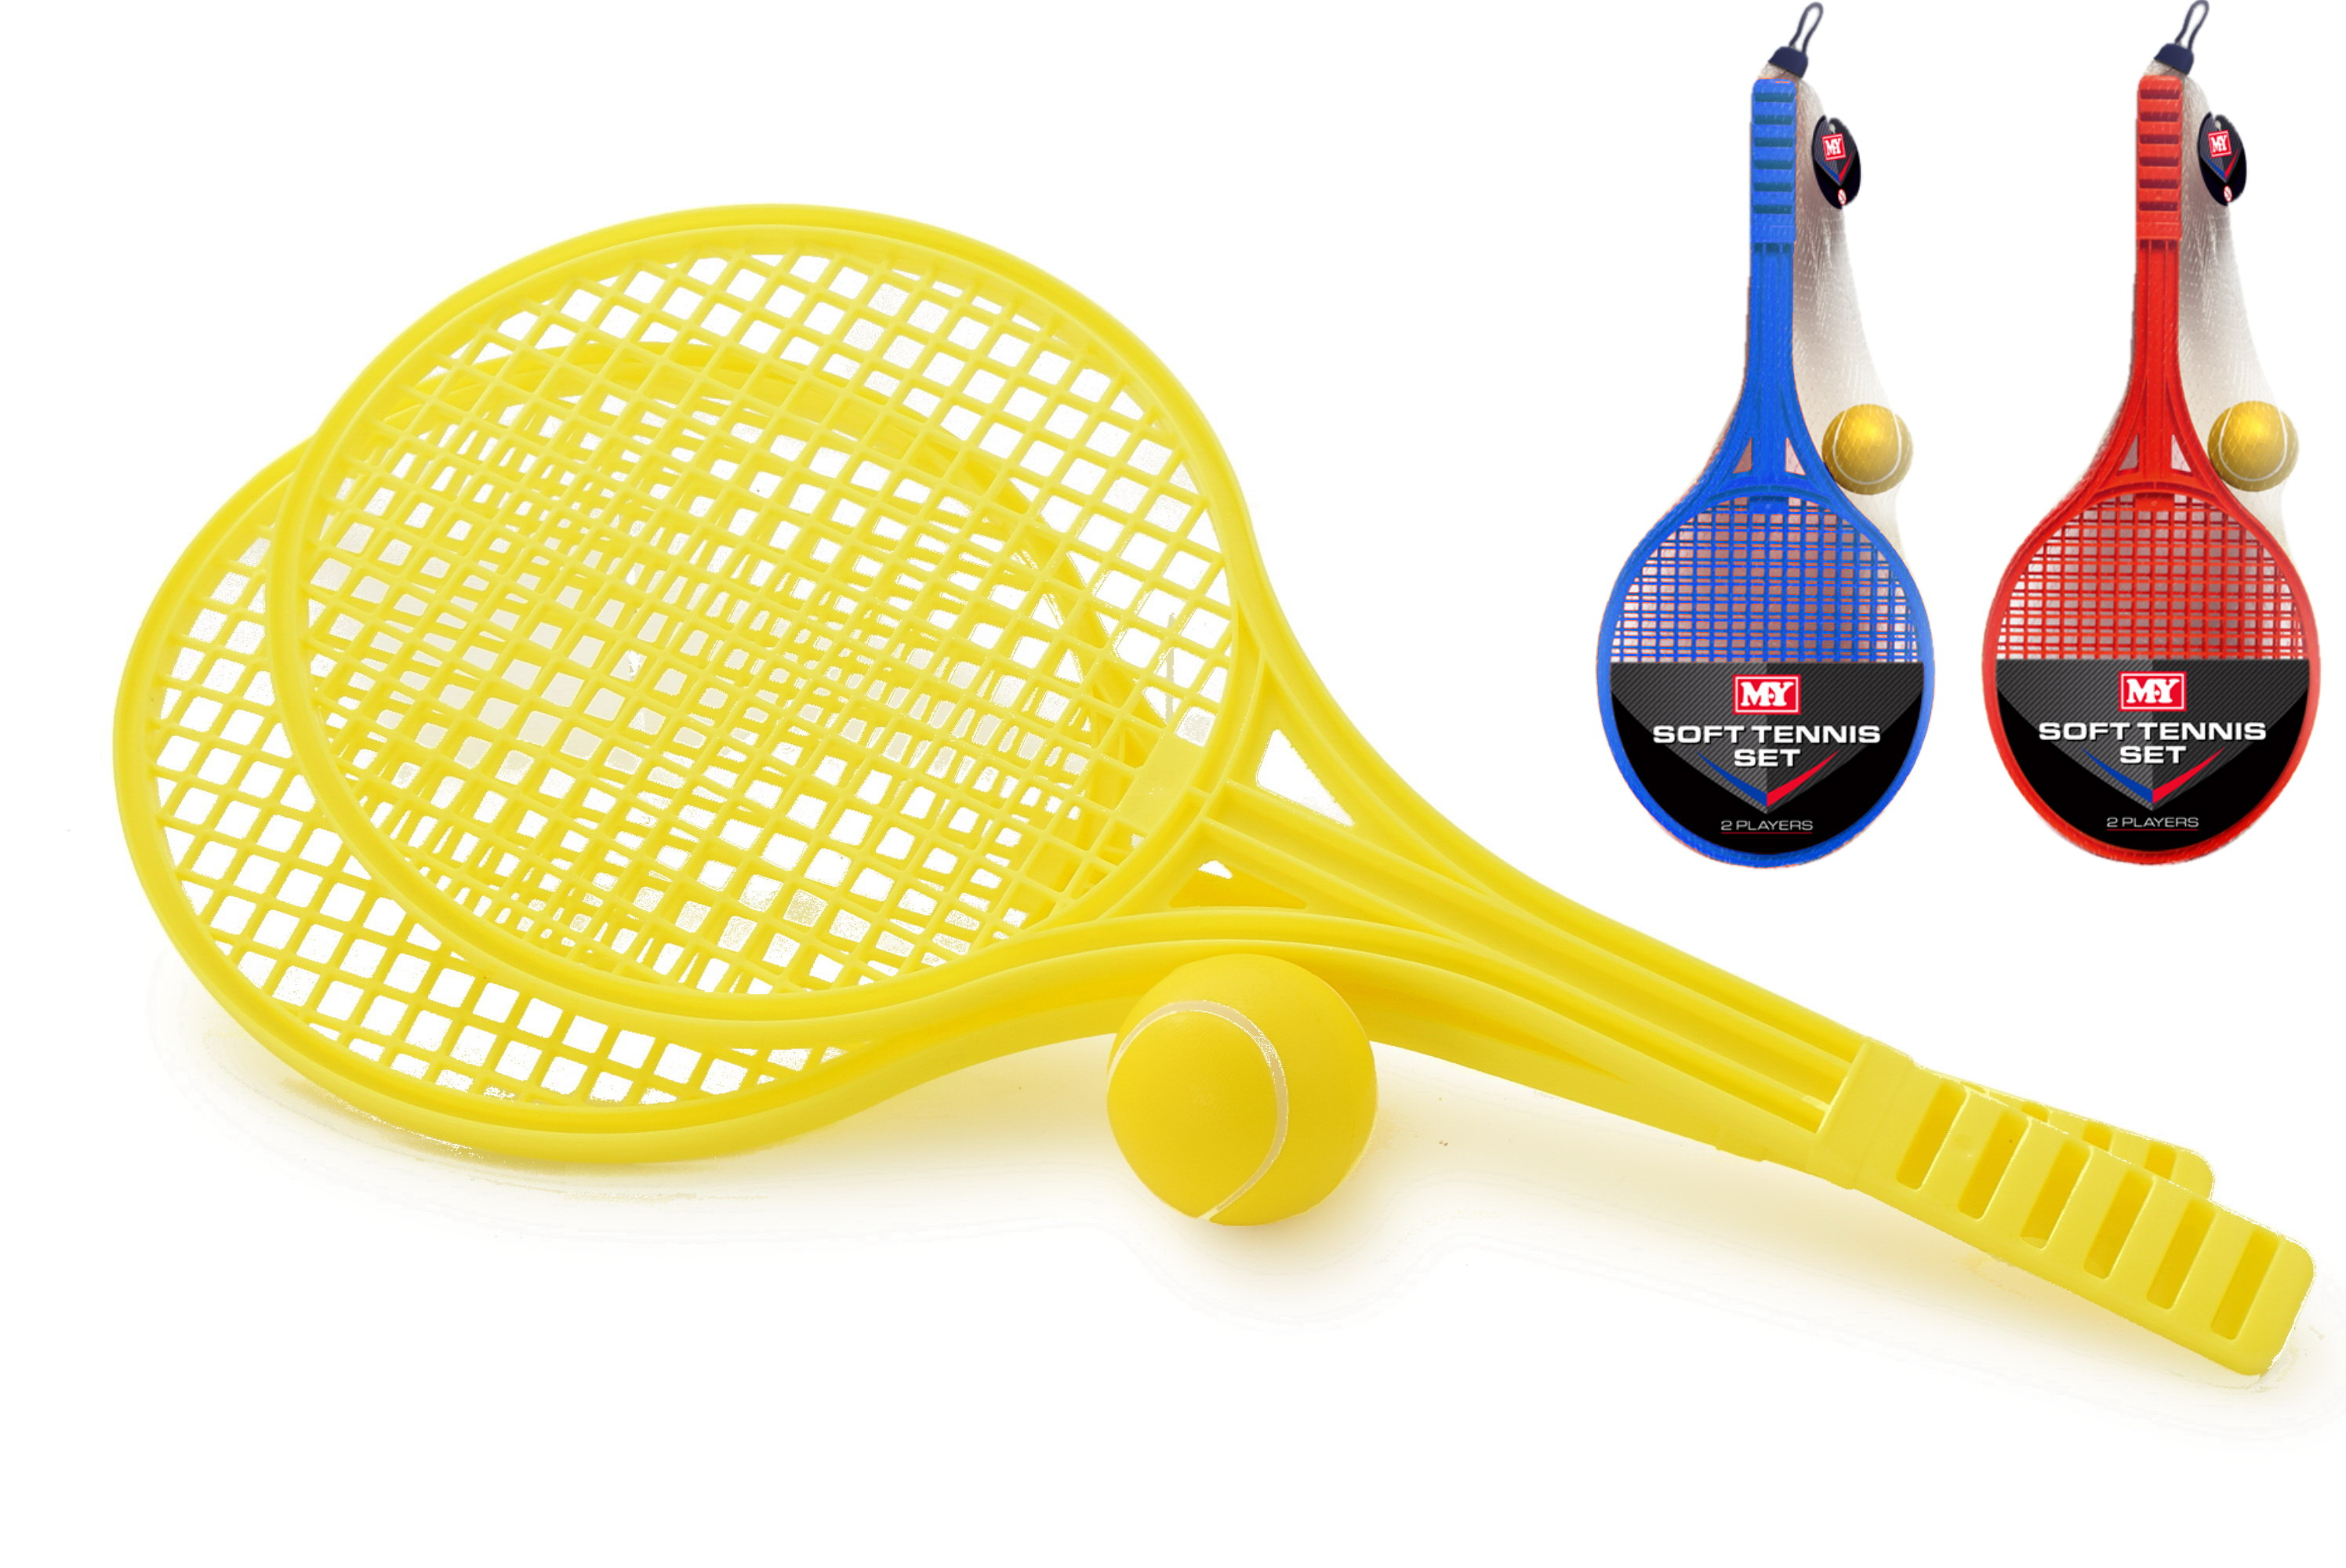 Soft Tennis Set 276gm (3 Assorted Colours) Netted